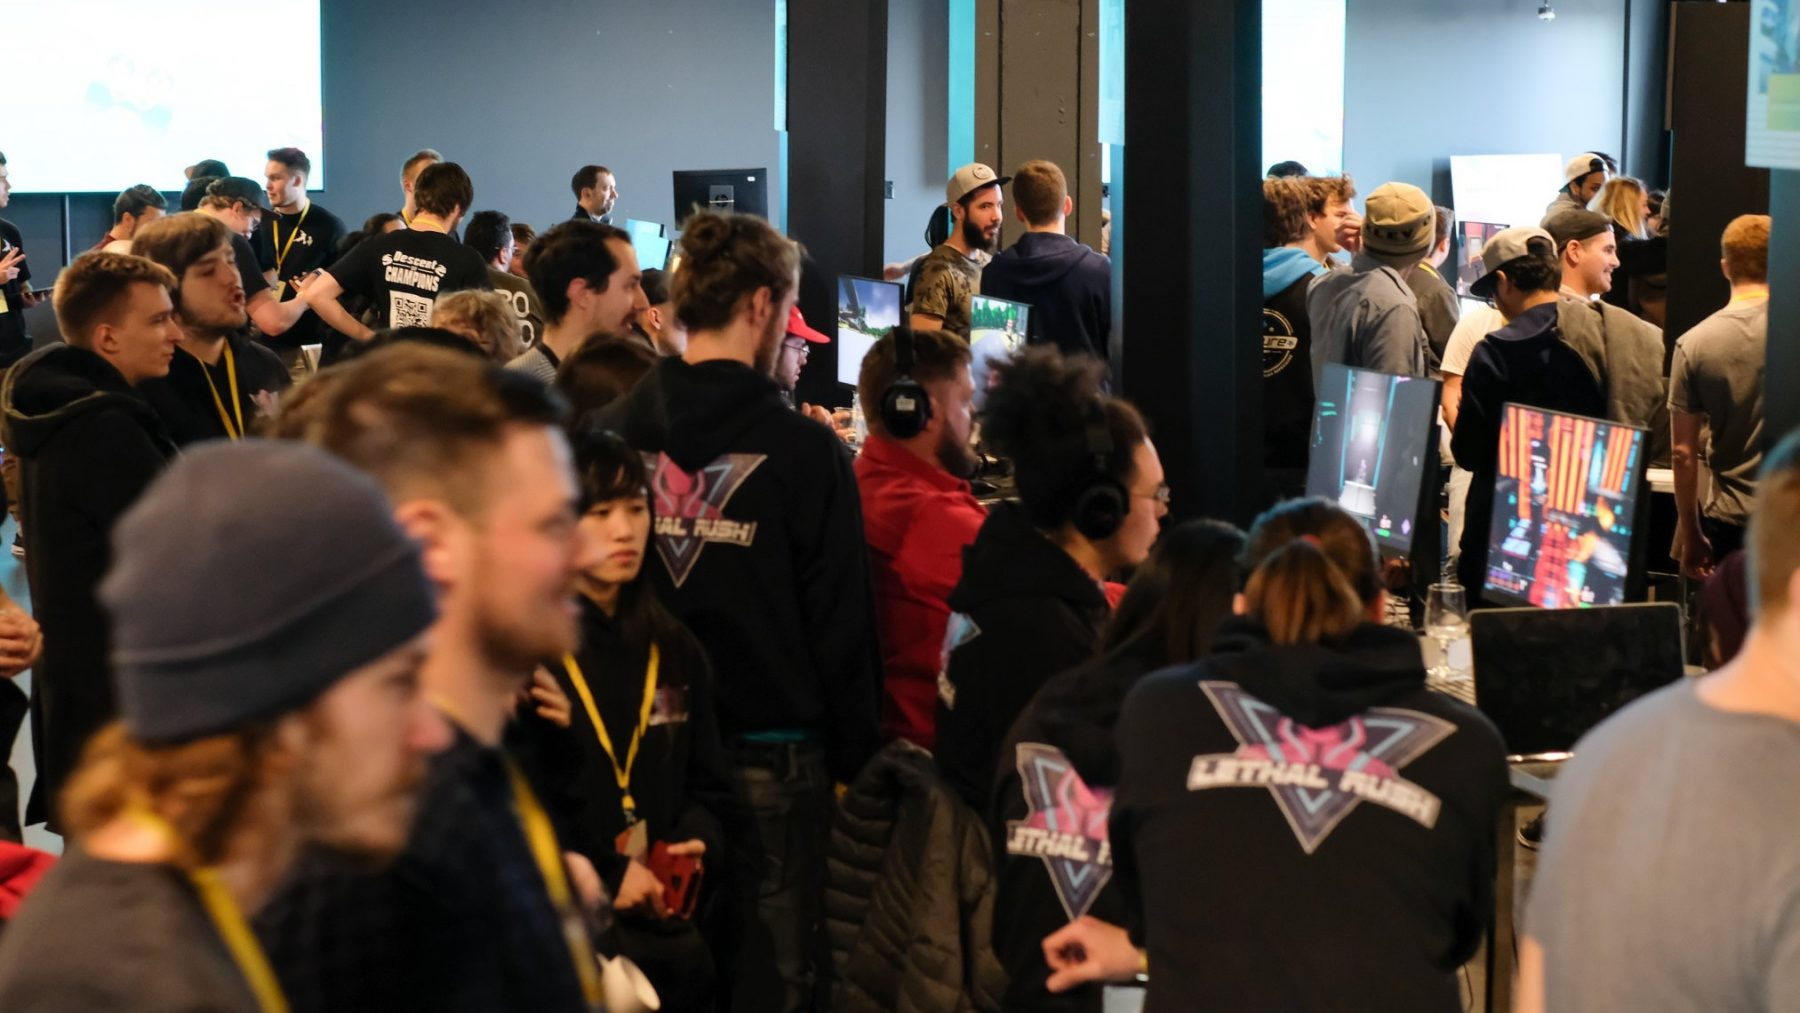 Room full of people at a game competition